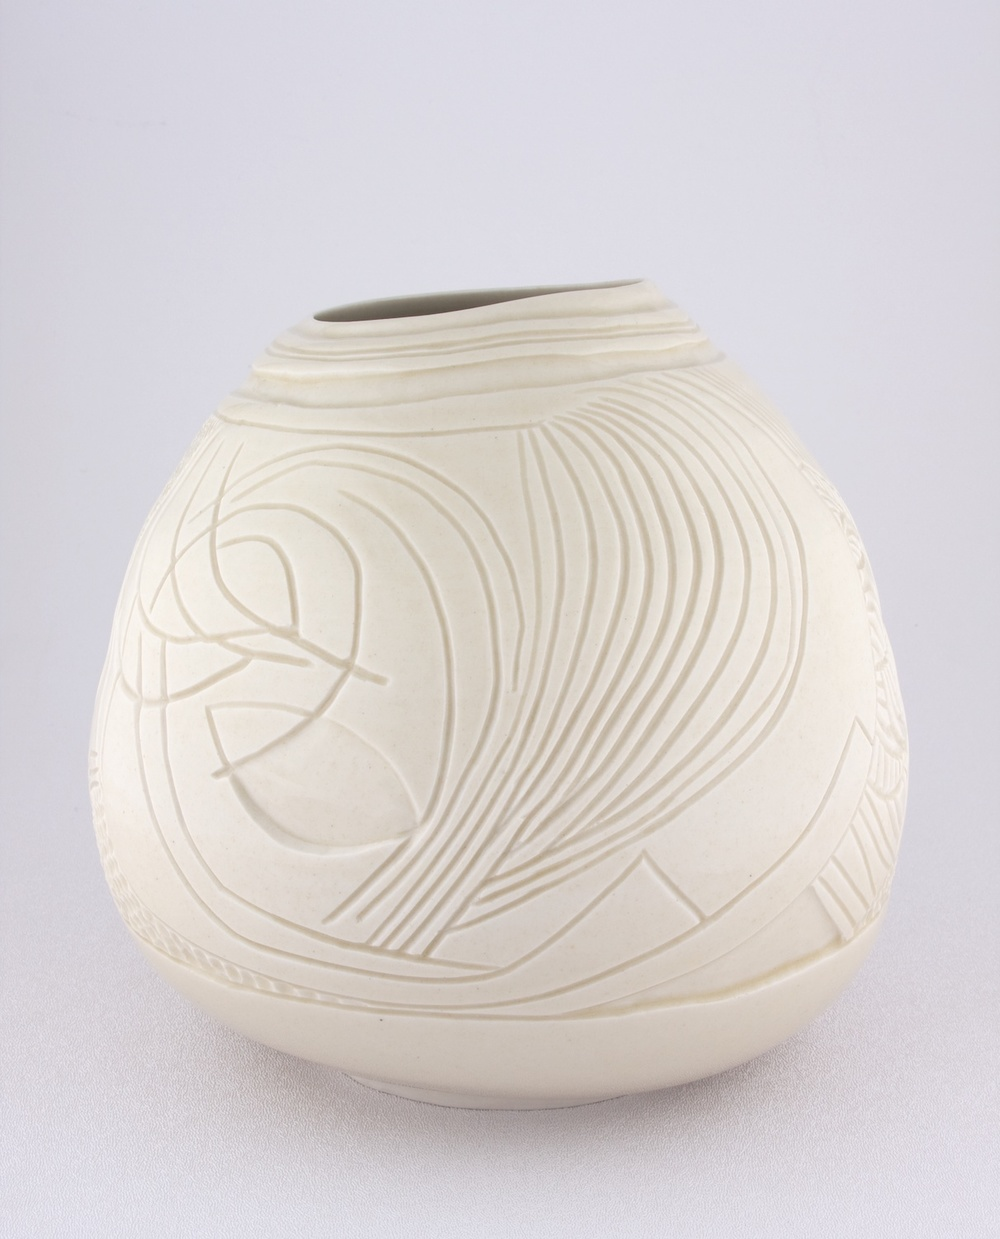 "Shio Kusaka Untitled (freestyle 2) 2009 Porcelain 7 1/2"" x 7 1/4"" SK047"